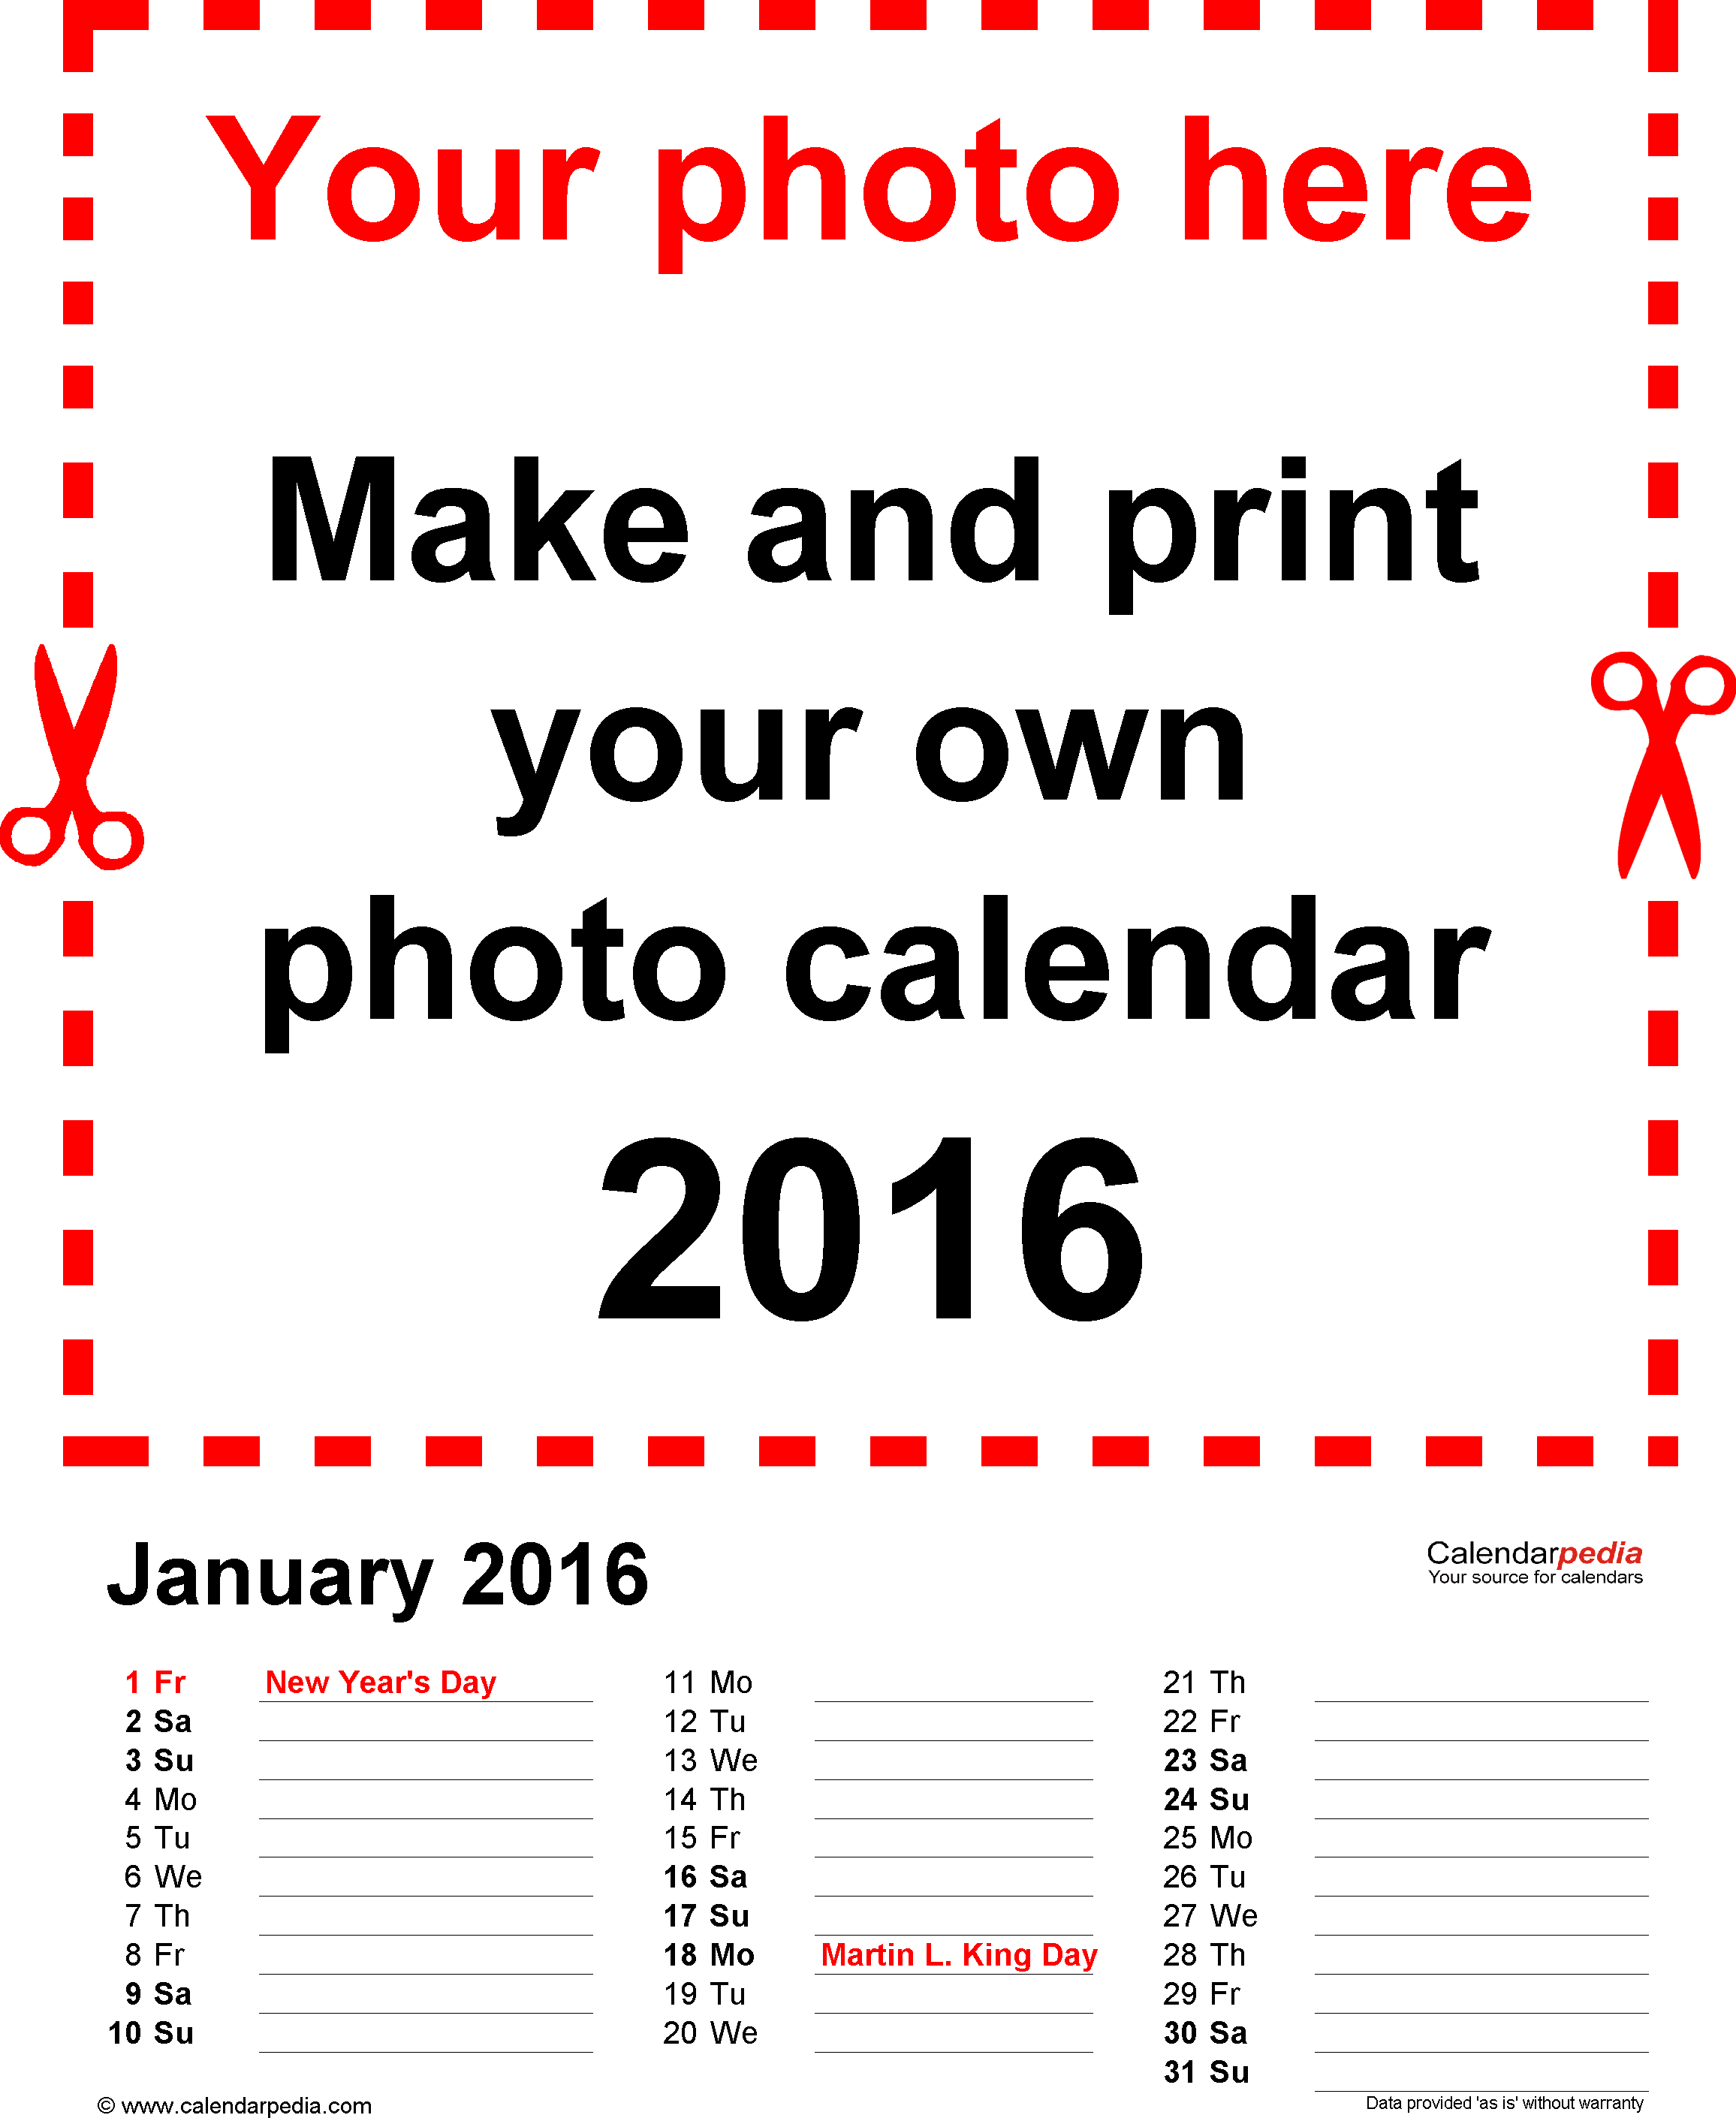 Download Template 3: Photo calendar 2016 for PDF, 12 pages, portrait format, days in three columns